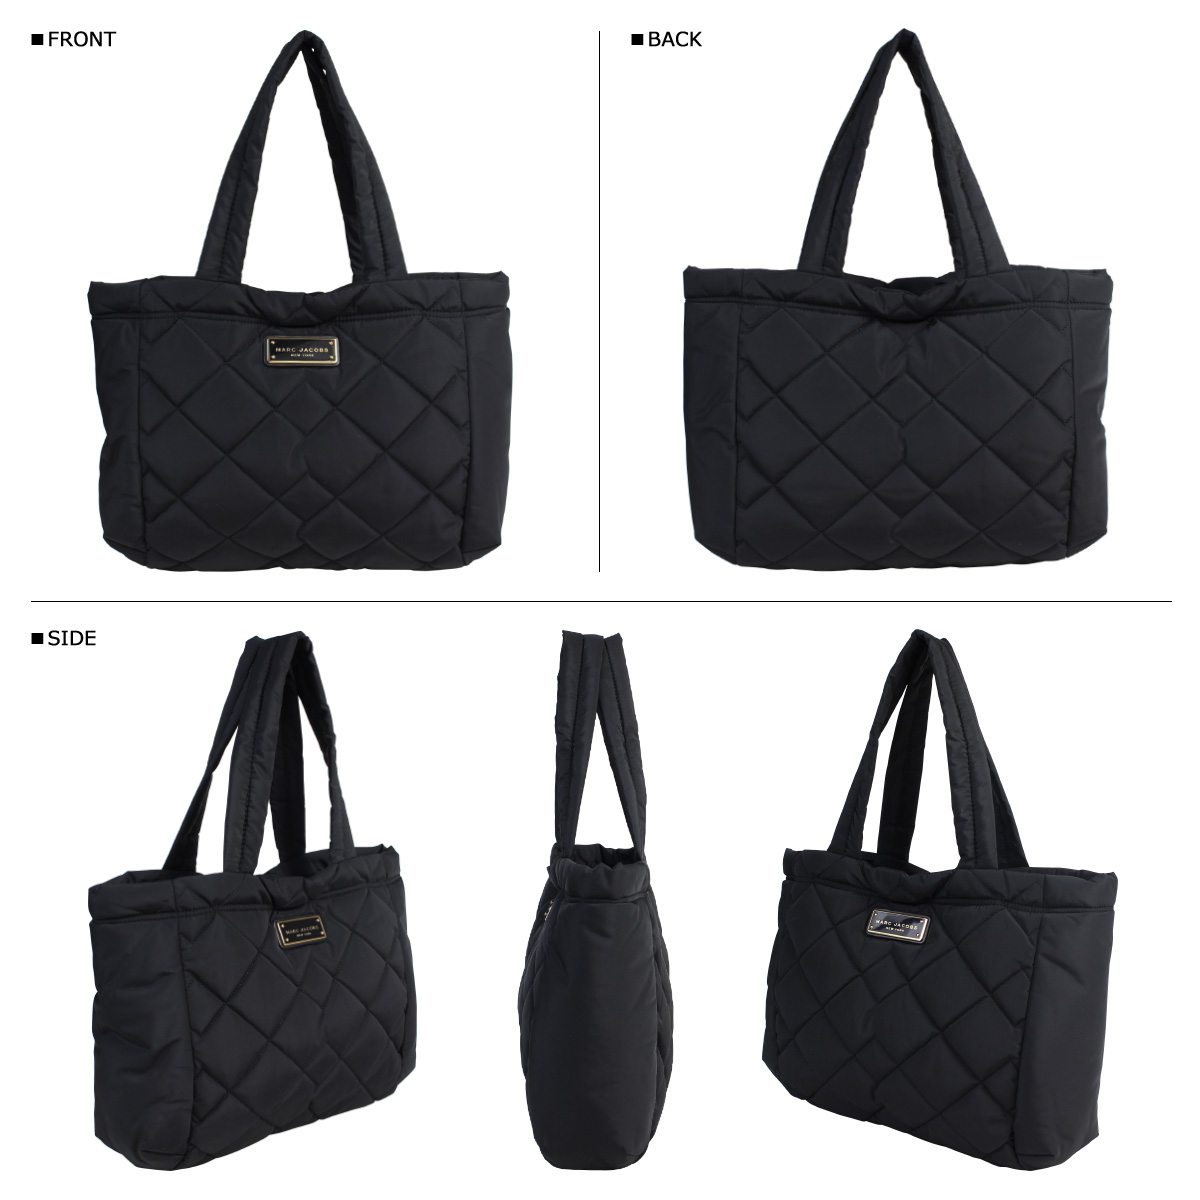 c0a4535eed41  arrival ♪ long-awaited an attention item of mark Jacobs  ・Popular tote bag  comes up from mark Jacobs. ・An item of the size that is usually convenient  ...